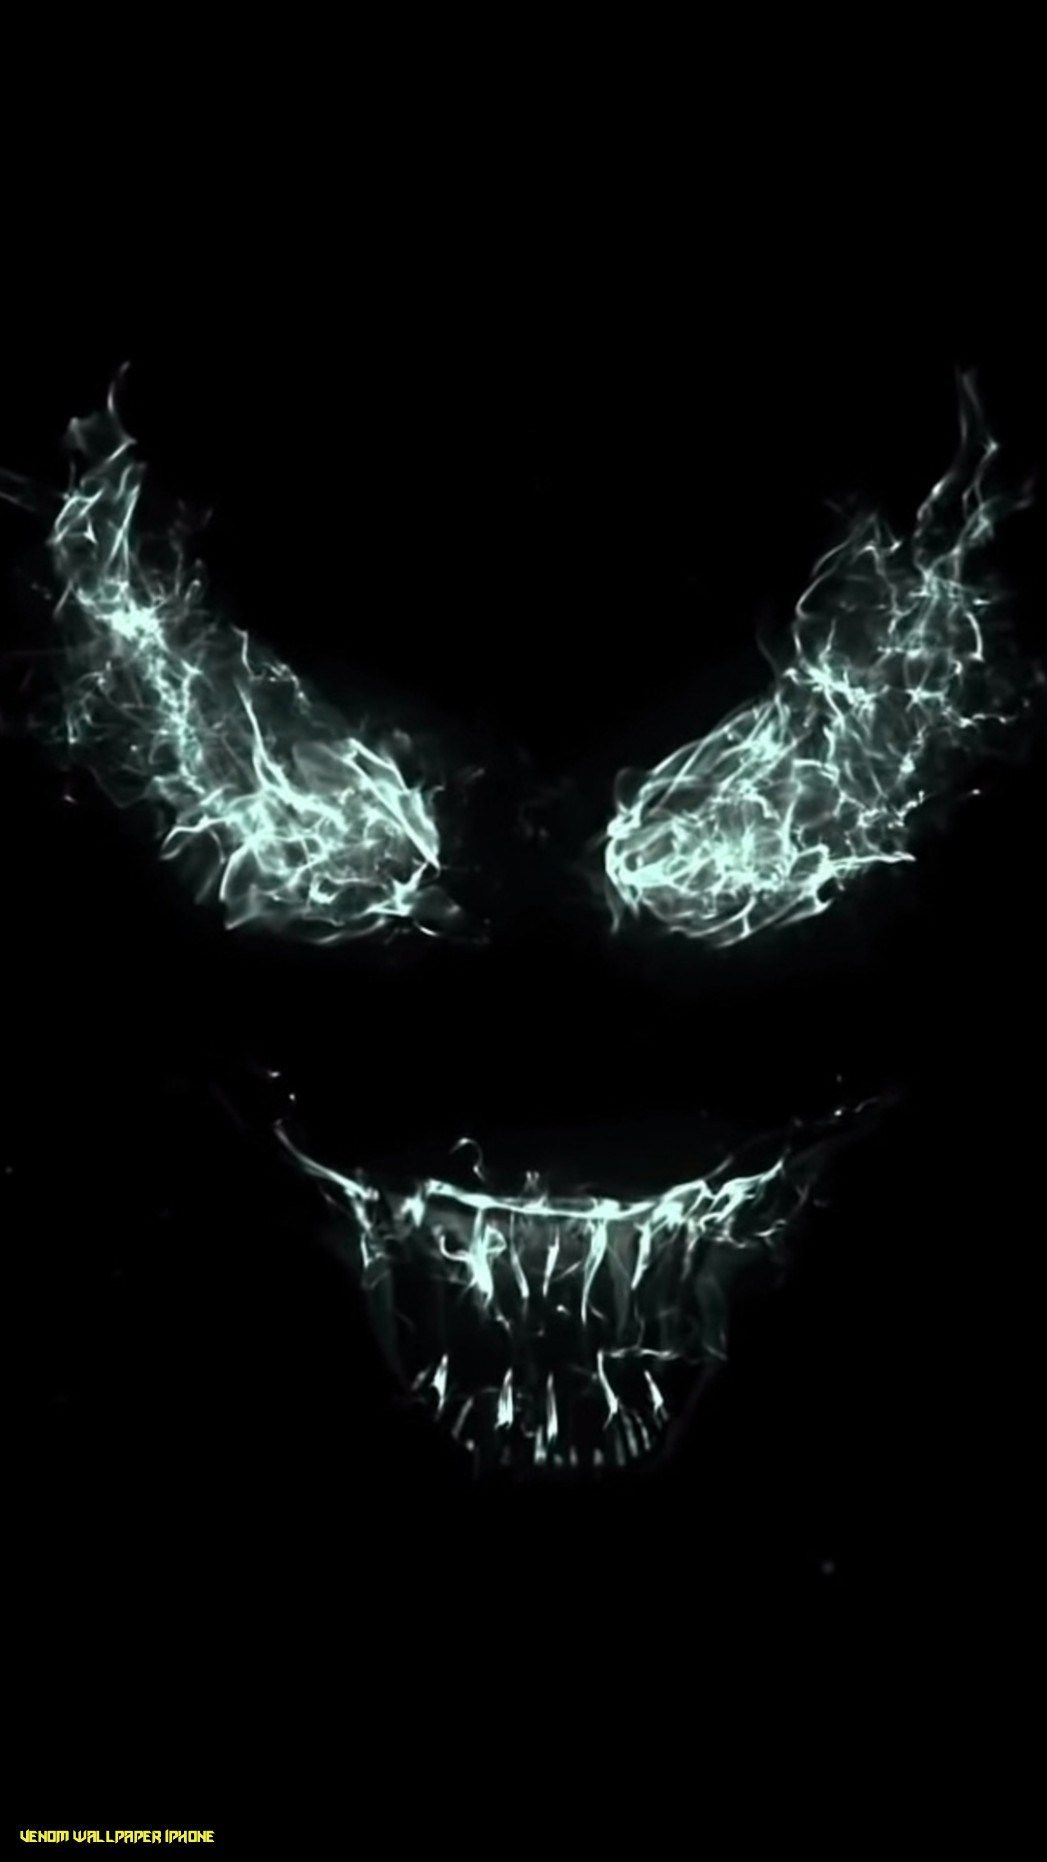 How You Can Attend Venom Wallpaper Iphone With Minimal Budget Venom Wallpaper Iphone Https Marvel Iphone Wallpaper Cool Wallpapers 4k Iphone 8 Wallpaper Hd